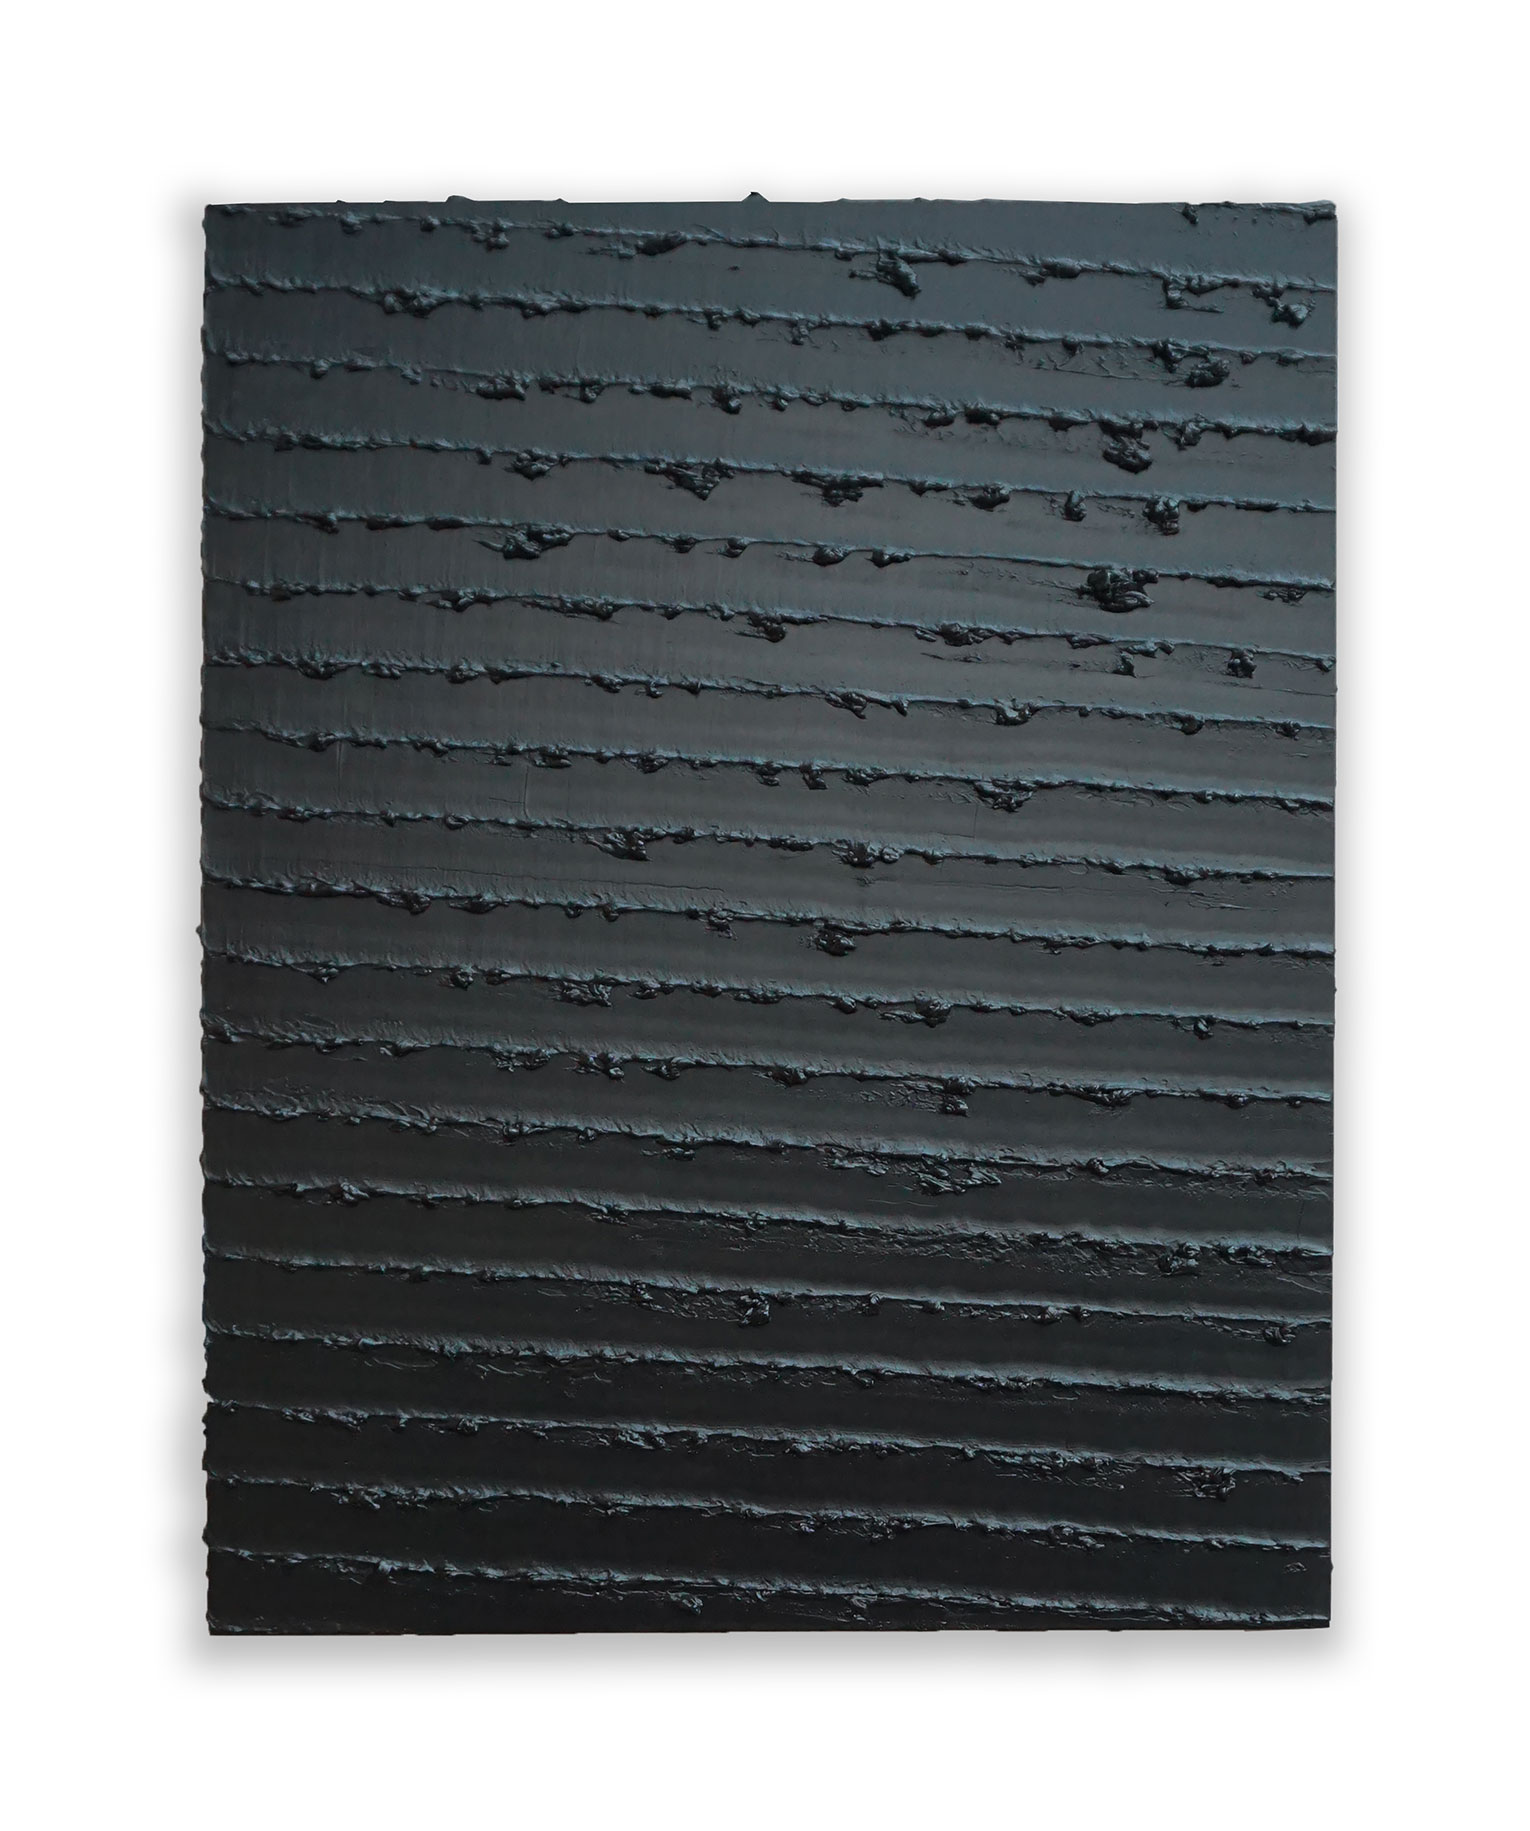 <b>Title:&nbsp;</b>Days I lived a world of night. V<br /><b>Year:&nbsp;</b>2019<br /><b>Medium:&nbsp;</b>Oil on birch ply panel<br /><b>Size:&nbsp;</b>50 x 40cm